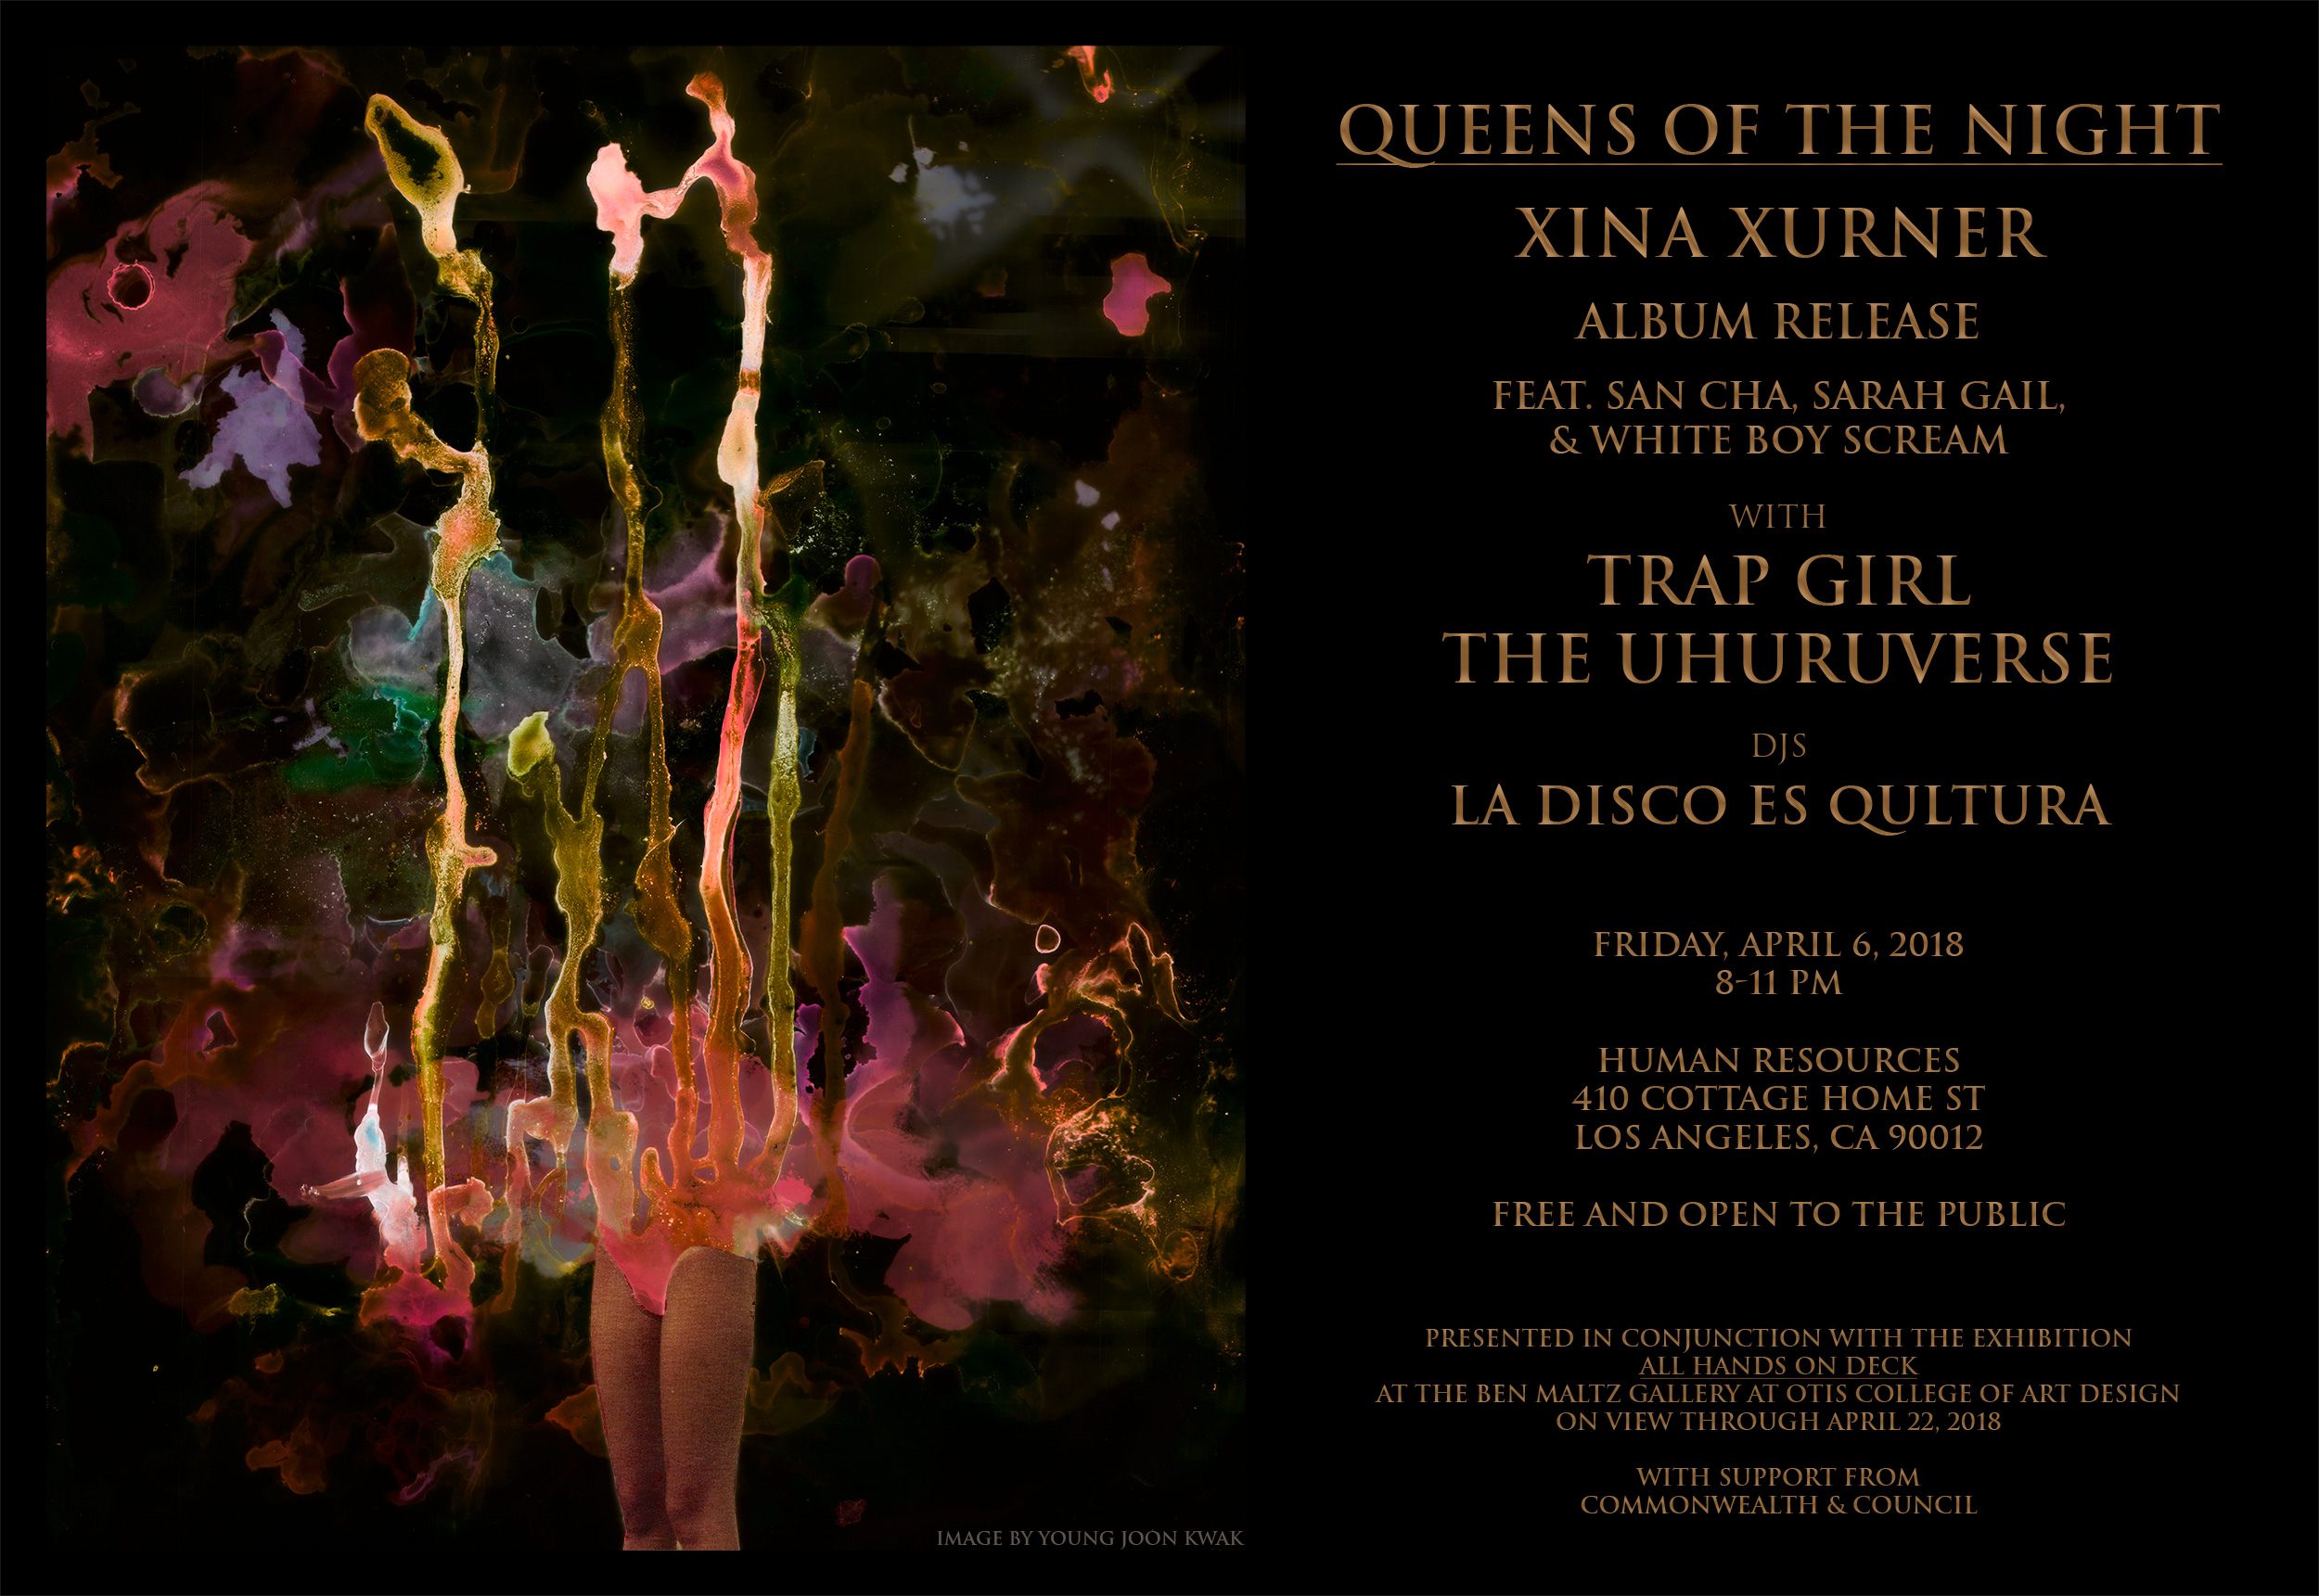 "Join us for a night of experimental music and performance celebrating the release of Queens of the Night, the new album by Xina Xurner. Featuring performances by Xina Xurner (with guests San Cha, Sarah Gail, and White Boy Scream), Trap Girl, and The Uhuruverse, with a late night DJ set by La Disco Es Qultura.   Presented by Ben Maltz Gallery at Otis College of Art and Design in conjunction with the exhibition All Hands on Deck, on view through April 22, 2018. Hosted by Human Resources, with additional support provided by Commonwealth & Council. This event is free and open to the public!  ----  About the artists:   Trap Girl   Trap Girl is a hardcore punk band formed in 2014 by lead singer Drew Arriola-Sands in LA. Trap Girl creates pissed off and cathartic anthems that spit nihilistic venom and don't hold back. This roaring diva outfit demands to be seen and heard. In 2015, Trap Girl released their debut album, From Diamonds to Dust, which featured hard-hitting anthems such as ""I'm a Trap Girl"" and ""Dead Men Don't Rape."" In 2017, they released their follow-up record, The Black Market. Their music addresses issues such as the violence all too frequently experienced by trans POC and womxn, and the risks involved with black market surgical procedures. Arriola-Sands created Queer Queens of LA, a year-round concert series featuring queer artists, and Transgress Fest, the first festival in Southern California to spotlight trans/gender nonconforming punk, hardcore, and rock musicians.  www.trapgirl.bandcamp.com    The Uhuruverse   The Uhuruverse is a Los Angeles-based PROTEST ARTIST who uses multiple mediums and performance styles, including burlesque, butoh, and drag, to speak against oppression and demand the liberation of womxn's and gender nonconforming bodies. The artist is the electric guitarist for the band Fuck U Pay Us (a four piece Black femme punk band demanding land reparations for the African Holocaust and free self defense training for femmes). The Uhuruvese raps and sings, exploring other genres including but not limited to: Hip Hop, Punk, Funk, Disco, Vogue, Blues, Jazz, and New Jack Swing. In 2014, The Uhuruverse founded  #SNATCHPOWER , a post-apocalyptic, afrofuturistic, women's liberationist artist collective. In 2016, The Uhuruverse directed the psychedelic film noir, FIGHT IN HEELS, a collaboration with #SNATCHPOWER. In 2018, The Uhuruverse released her album, THE BRIGHTEST ODDEST STRANGEST STAR U EVER DID SAW UP CLOSE AND AFAR FROM PLANET EARTH TO MARS AND BEYOND!   www.soundcloud.com/theuhuruverse"